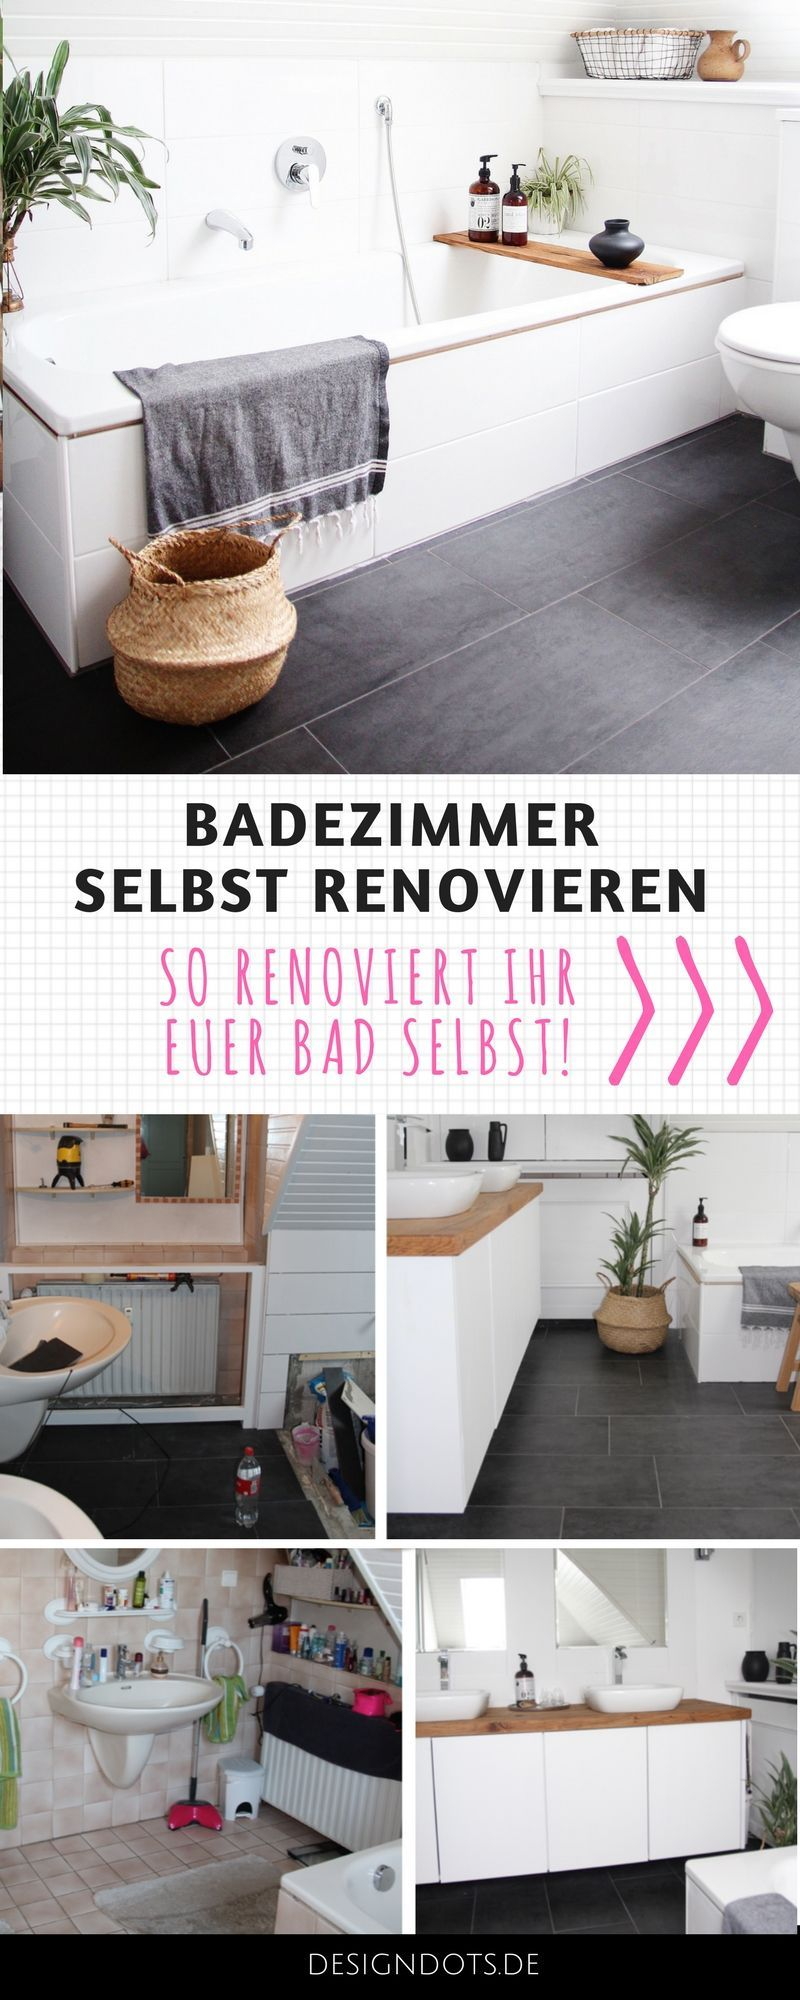 badezimmer selbst renovieren vorher nachher my living cube pinterest badezimmer baden. Black Bedroom Furniture Sets. Home Design Ideas